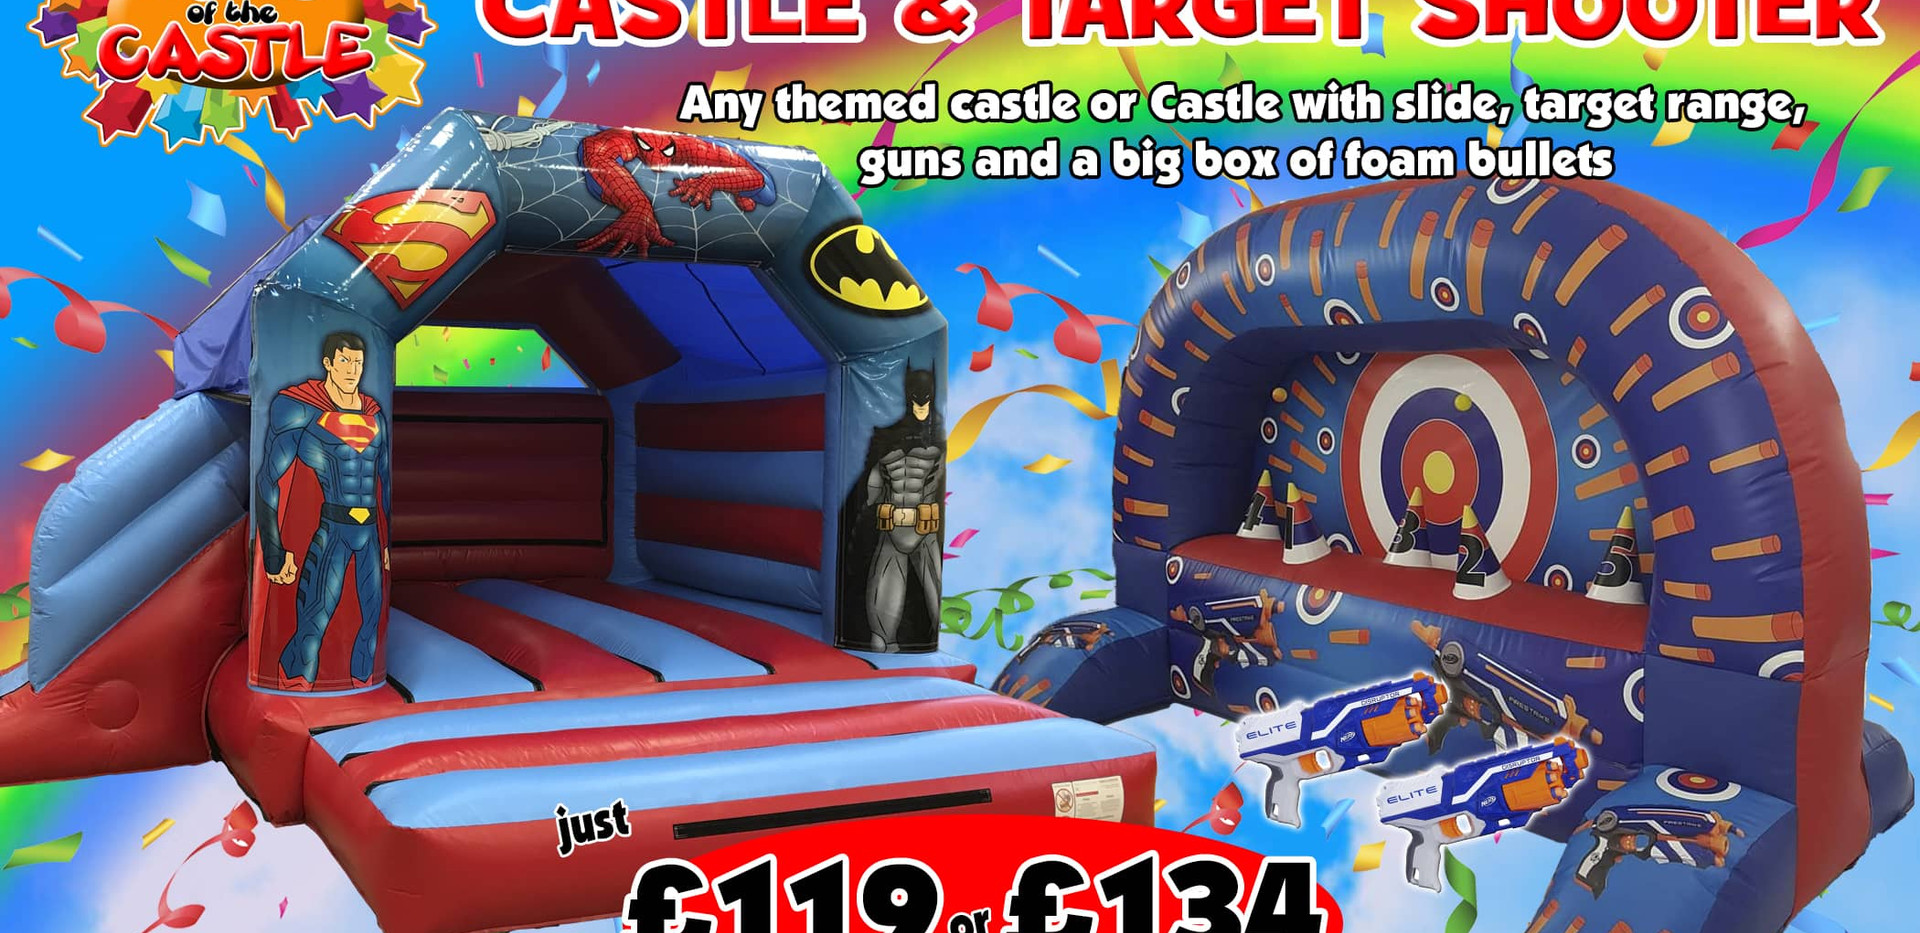 Bouncy Castle and Targer Shoooter Package